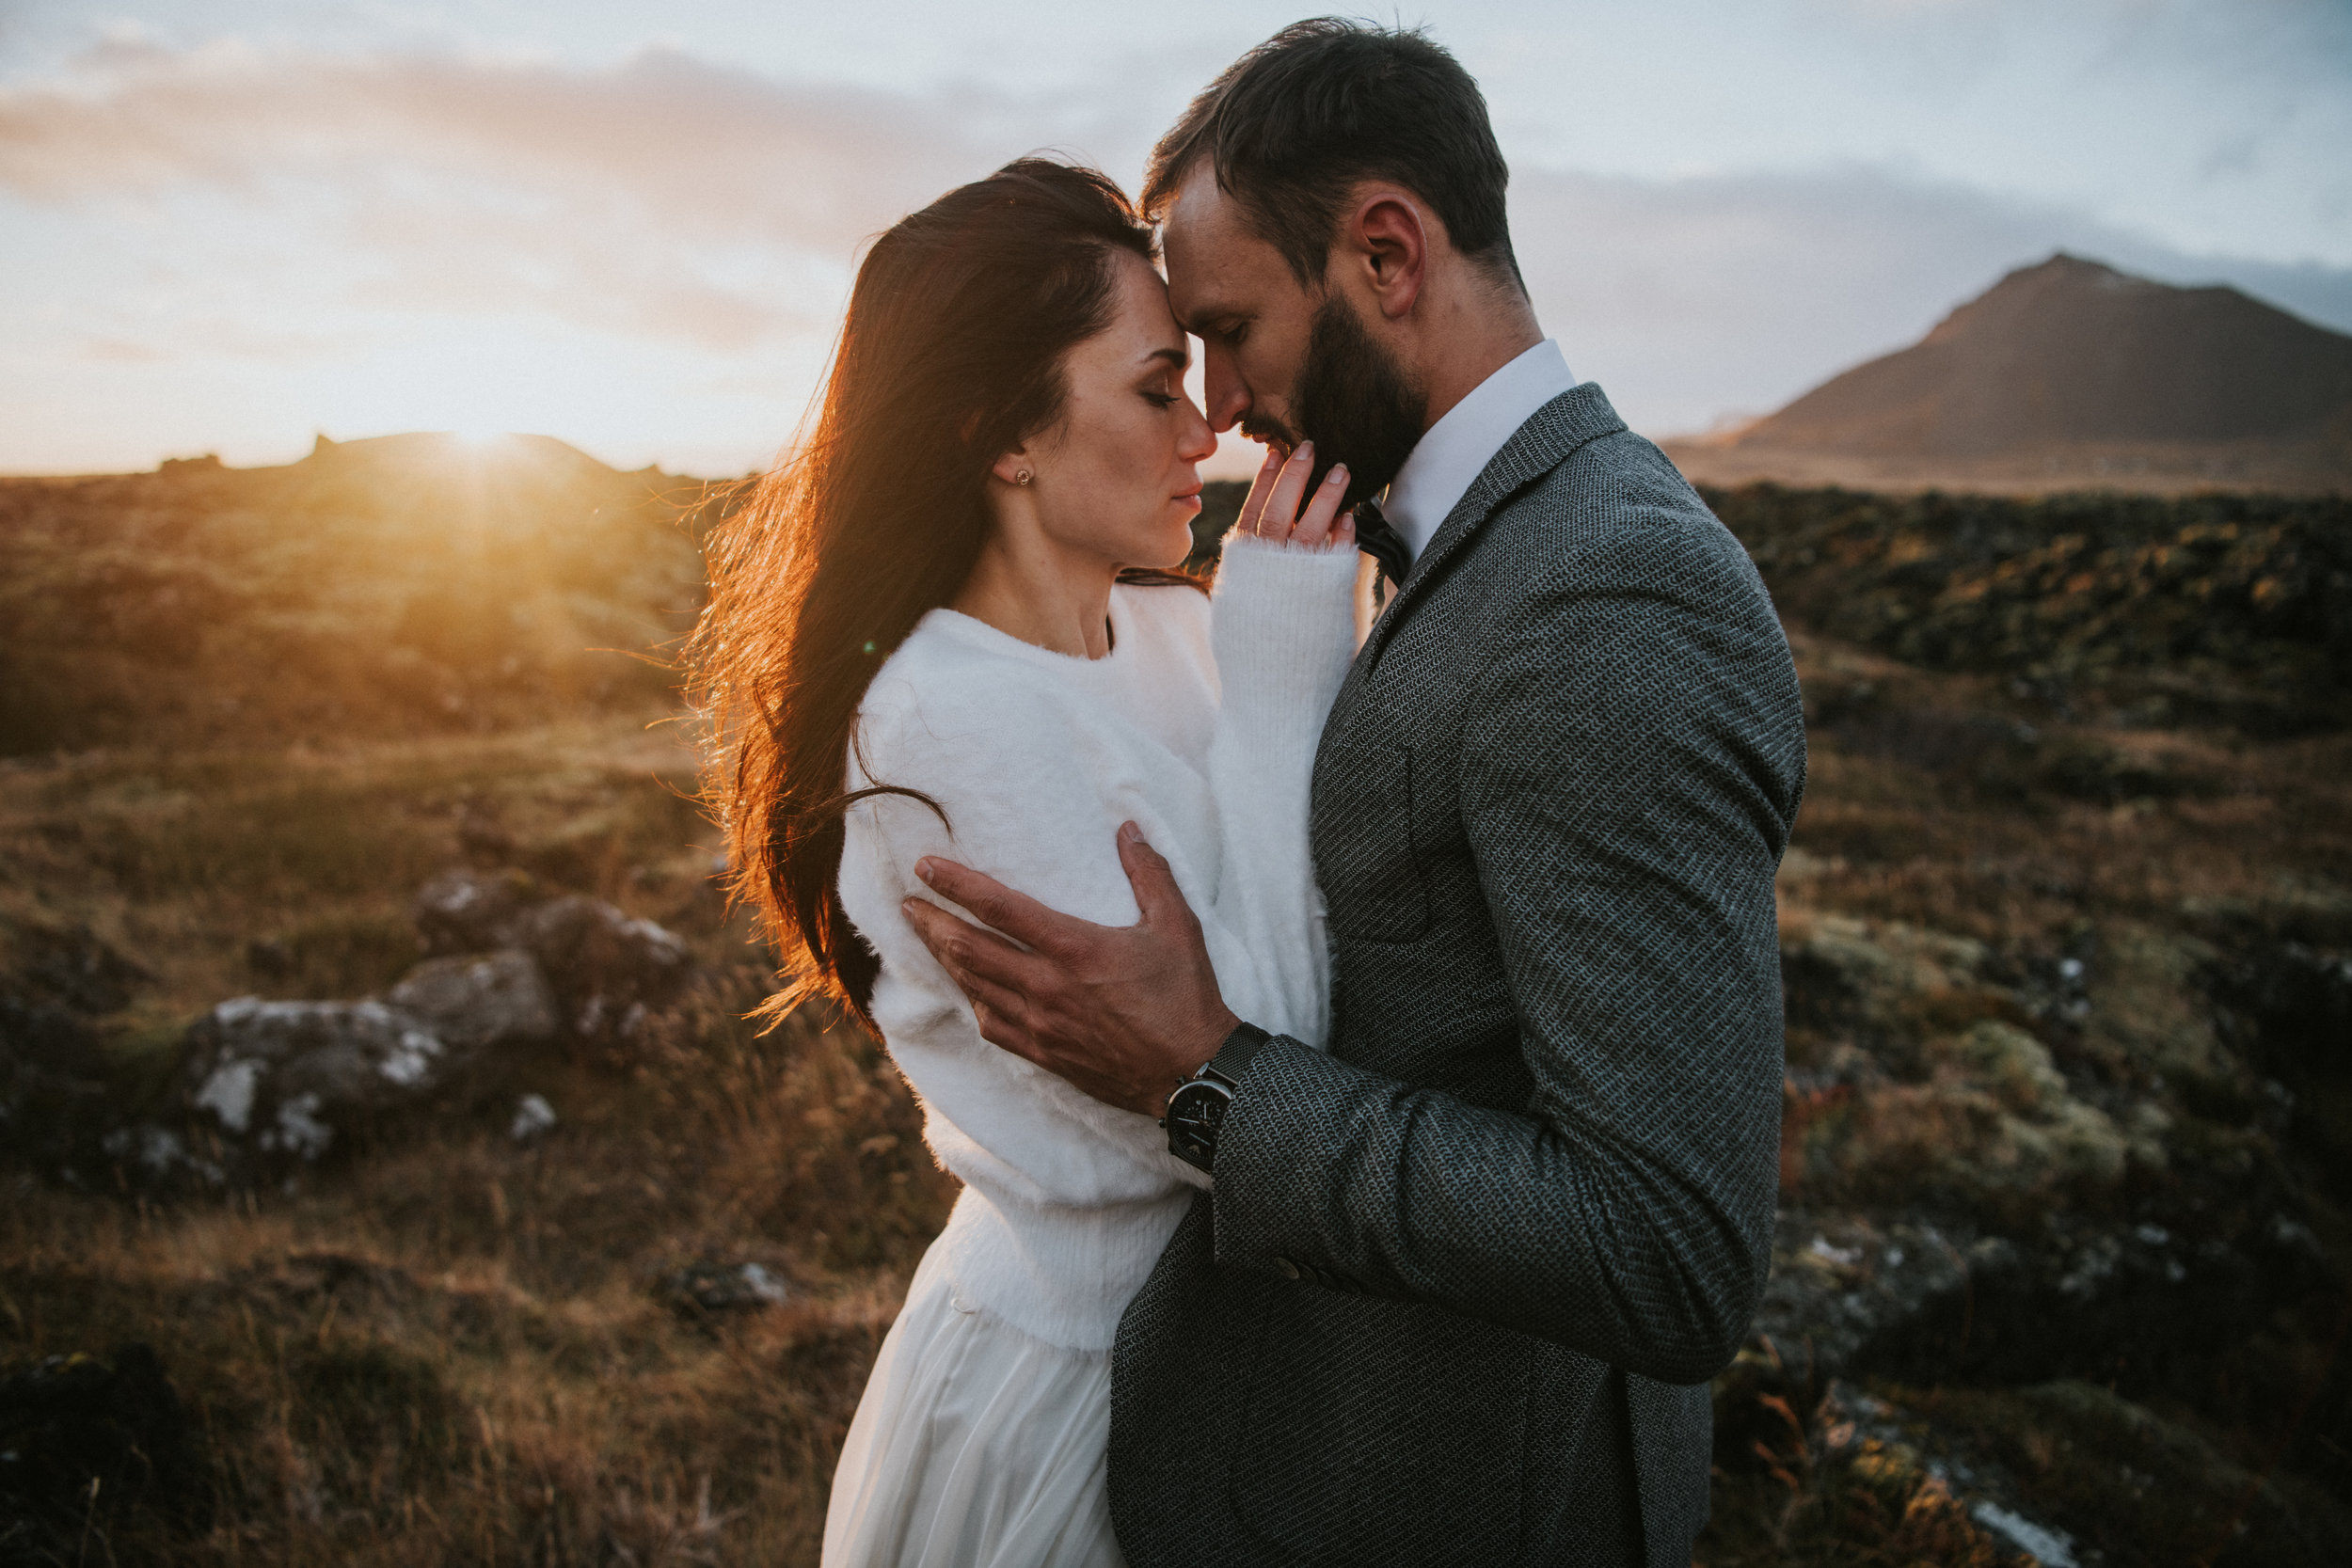 Natalie-Vitaly-Iceland-Elopement-Photographer-Videographer-51